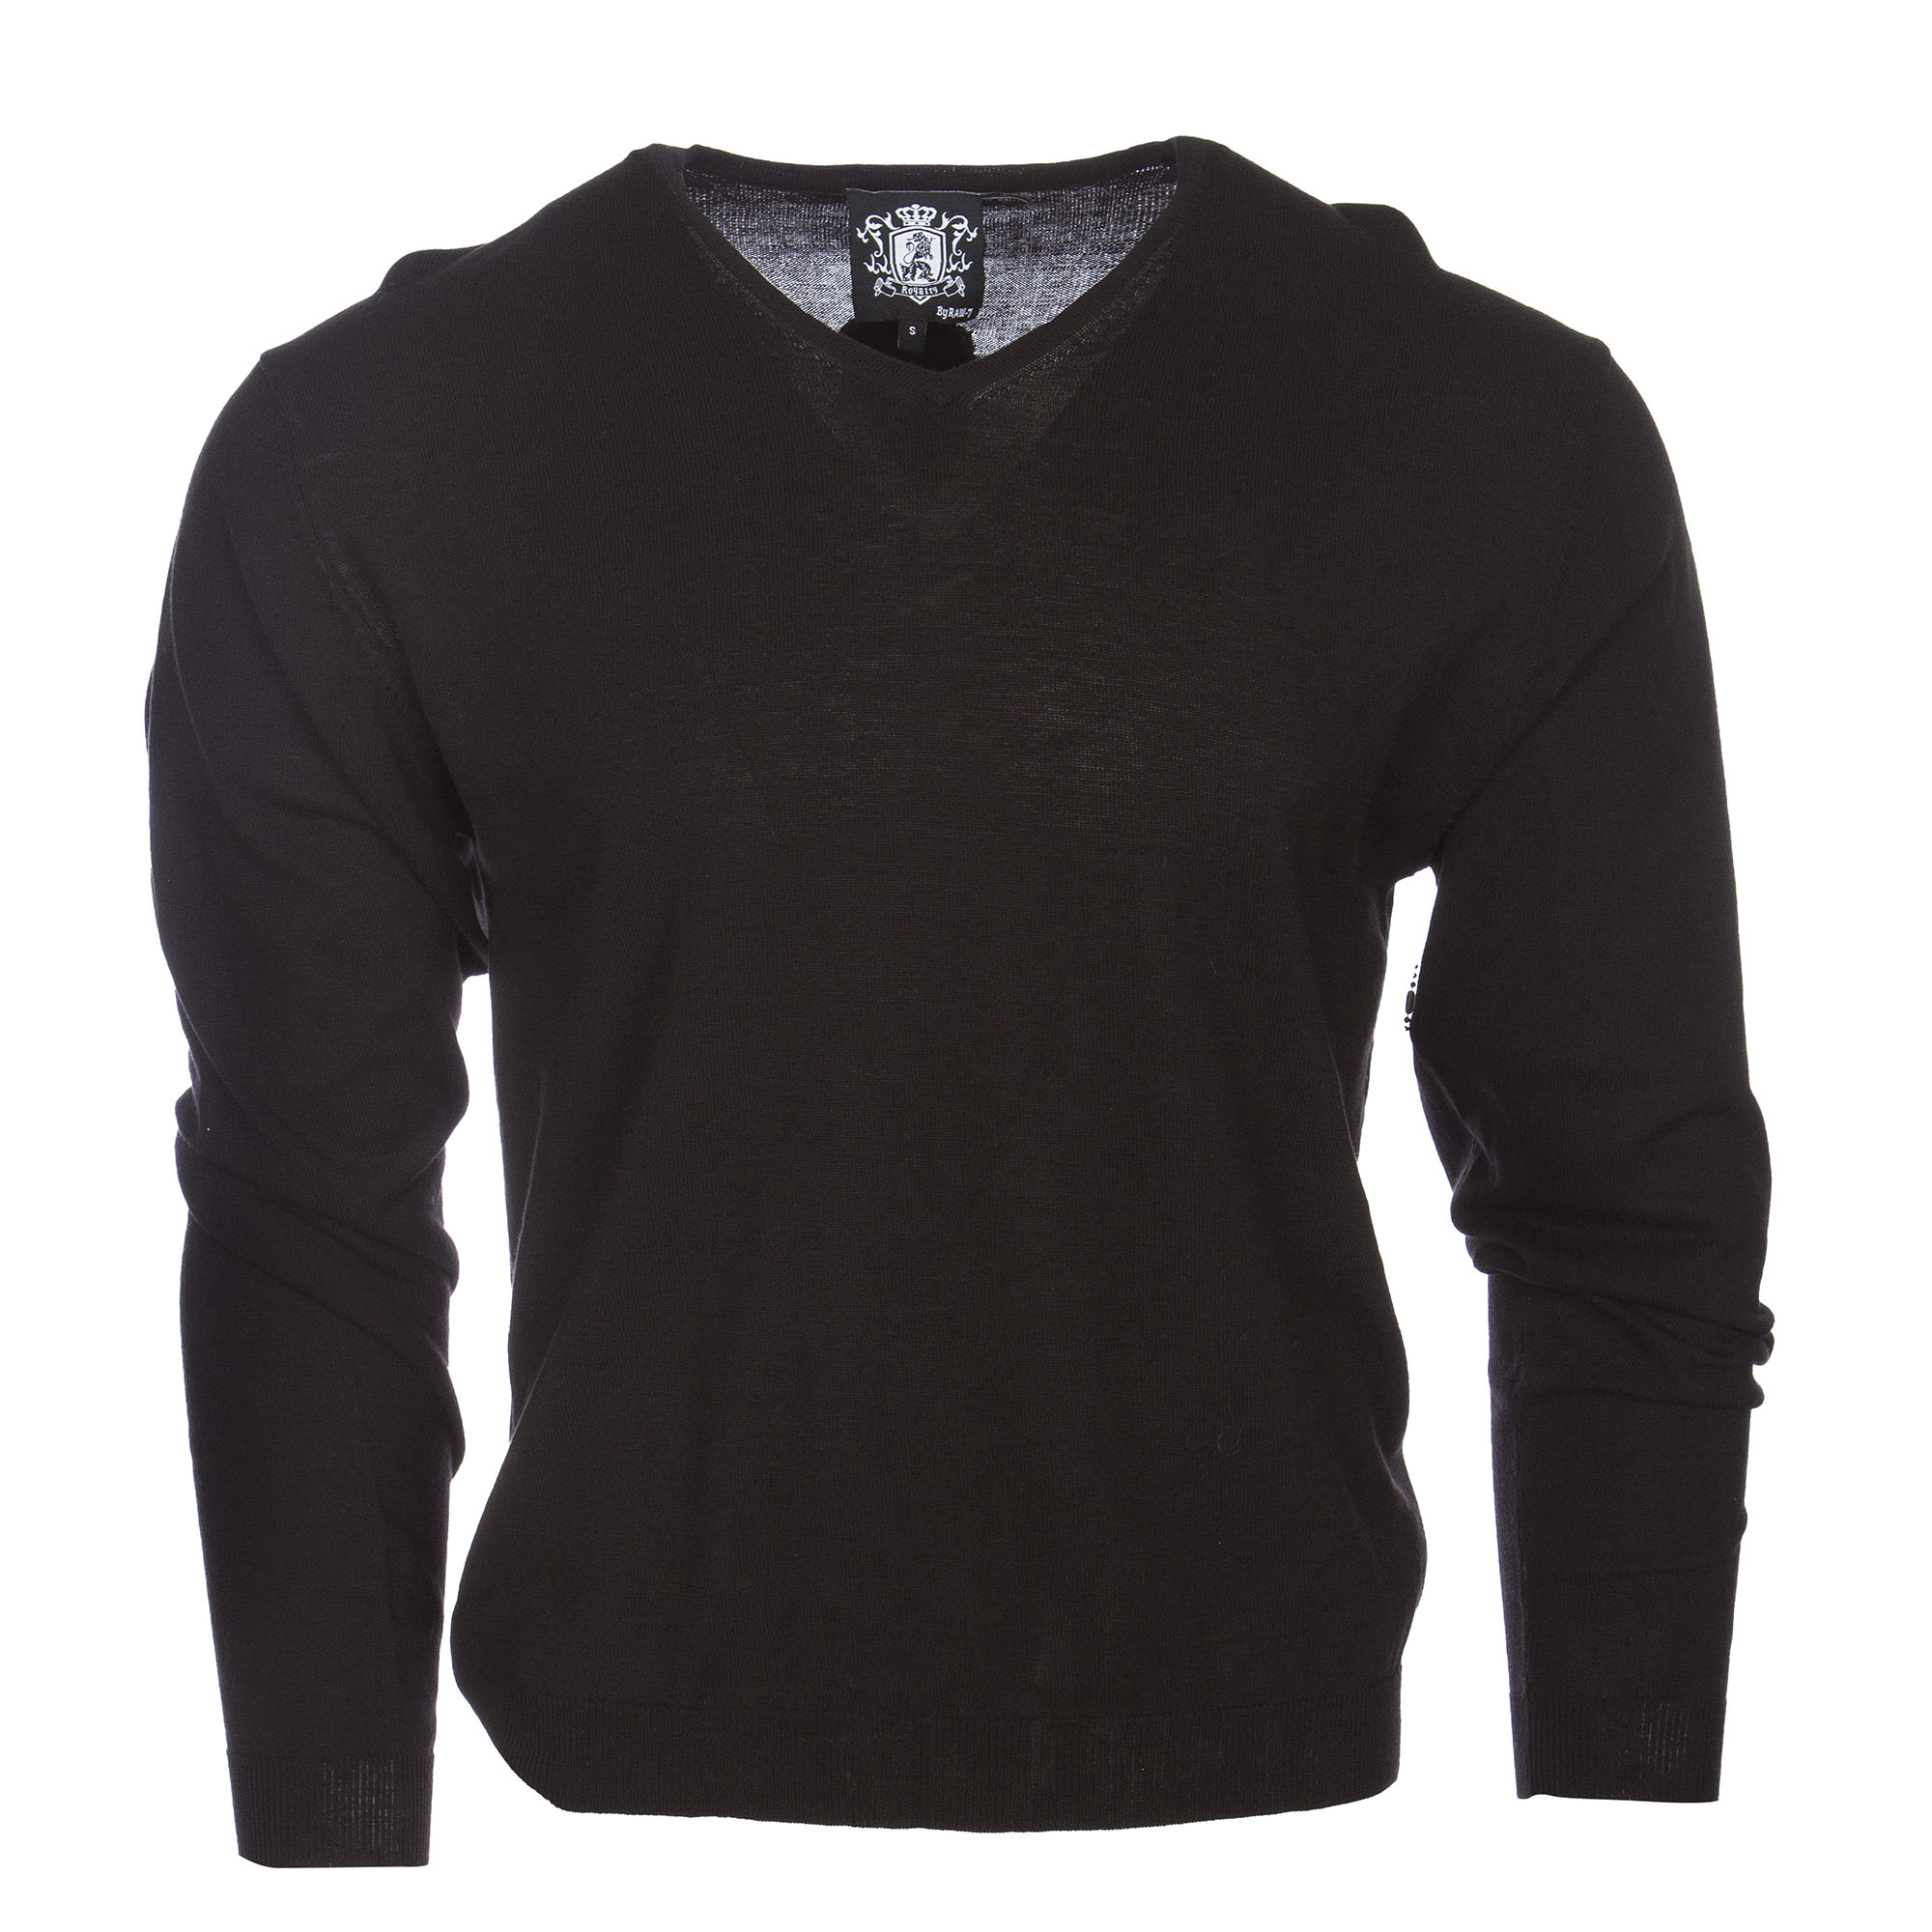 RAW 7 Y08A03S Royalty by Raw7 Men's Black V Neck Sweater Cross Design